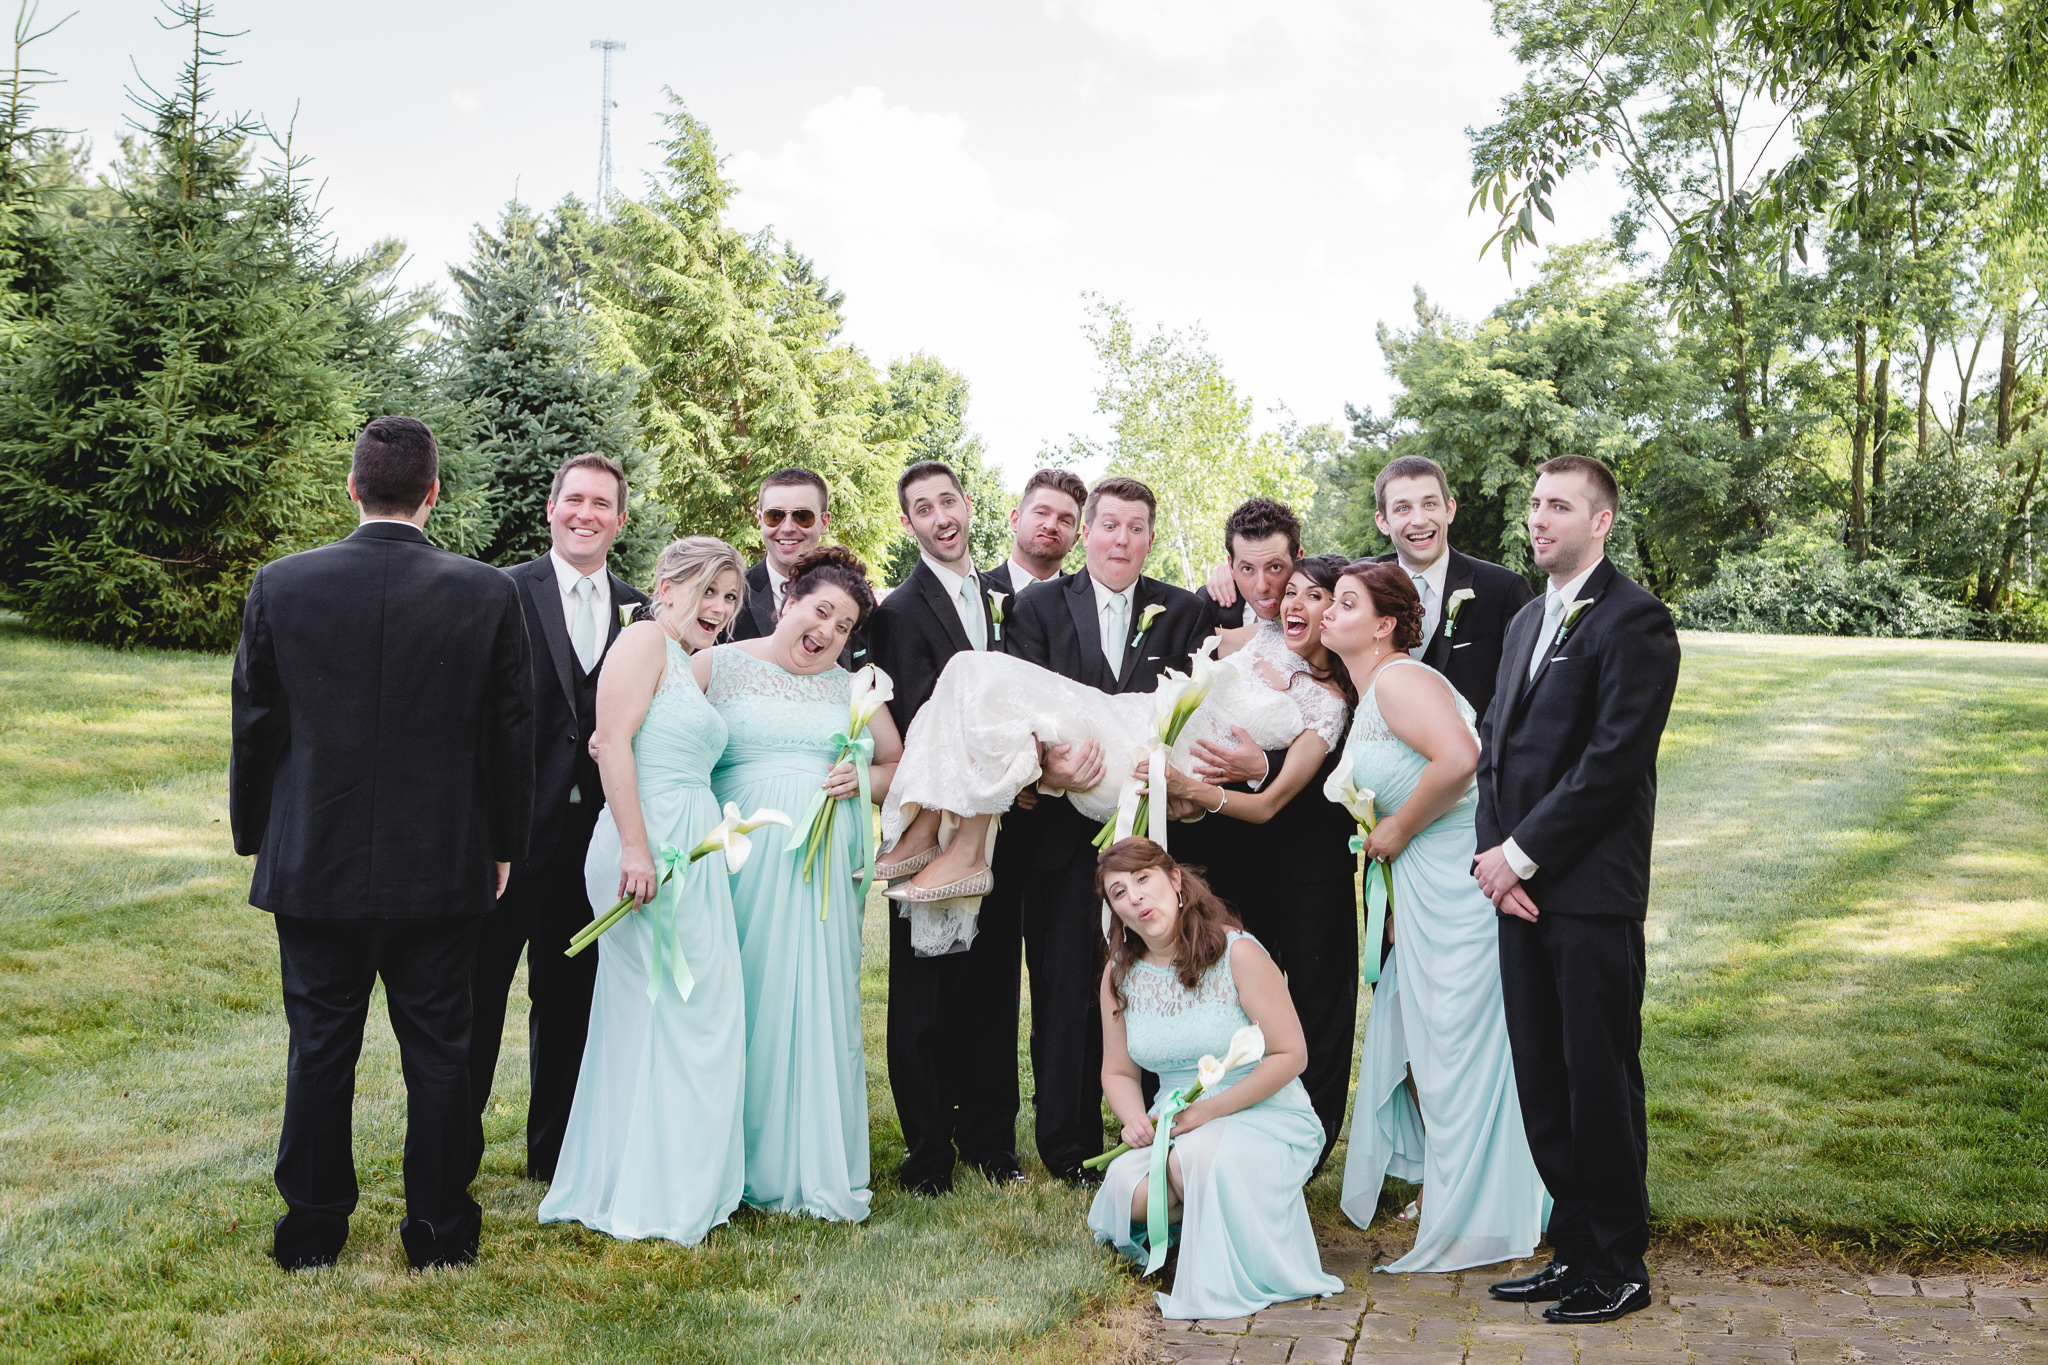 Bridal party poses for a goofy photo at Greystone Fields